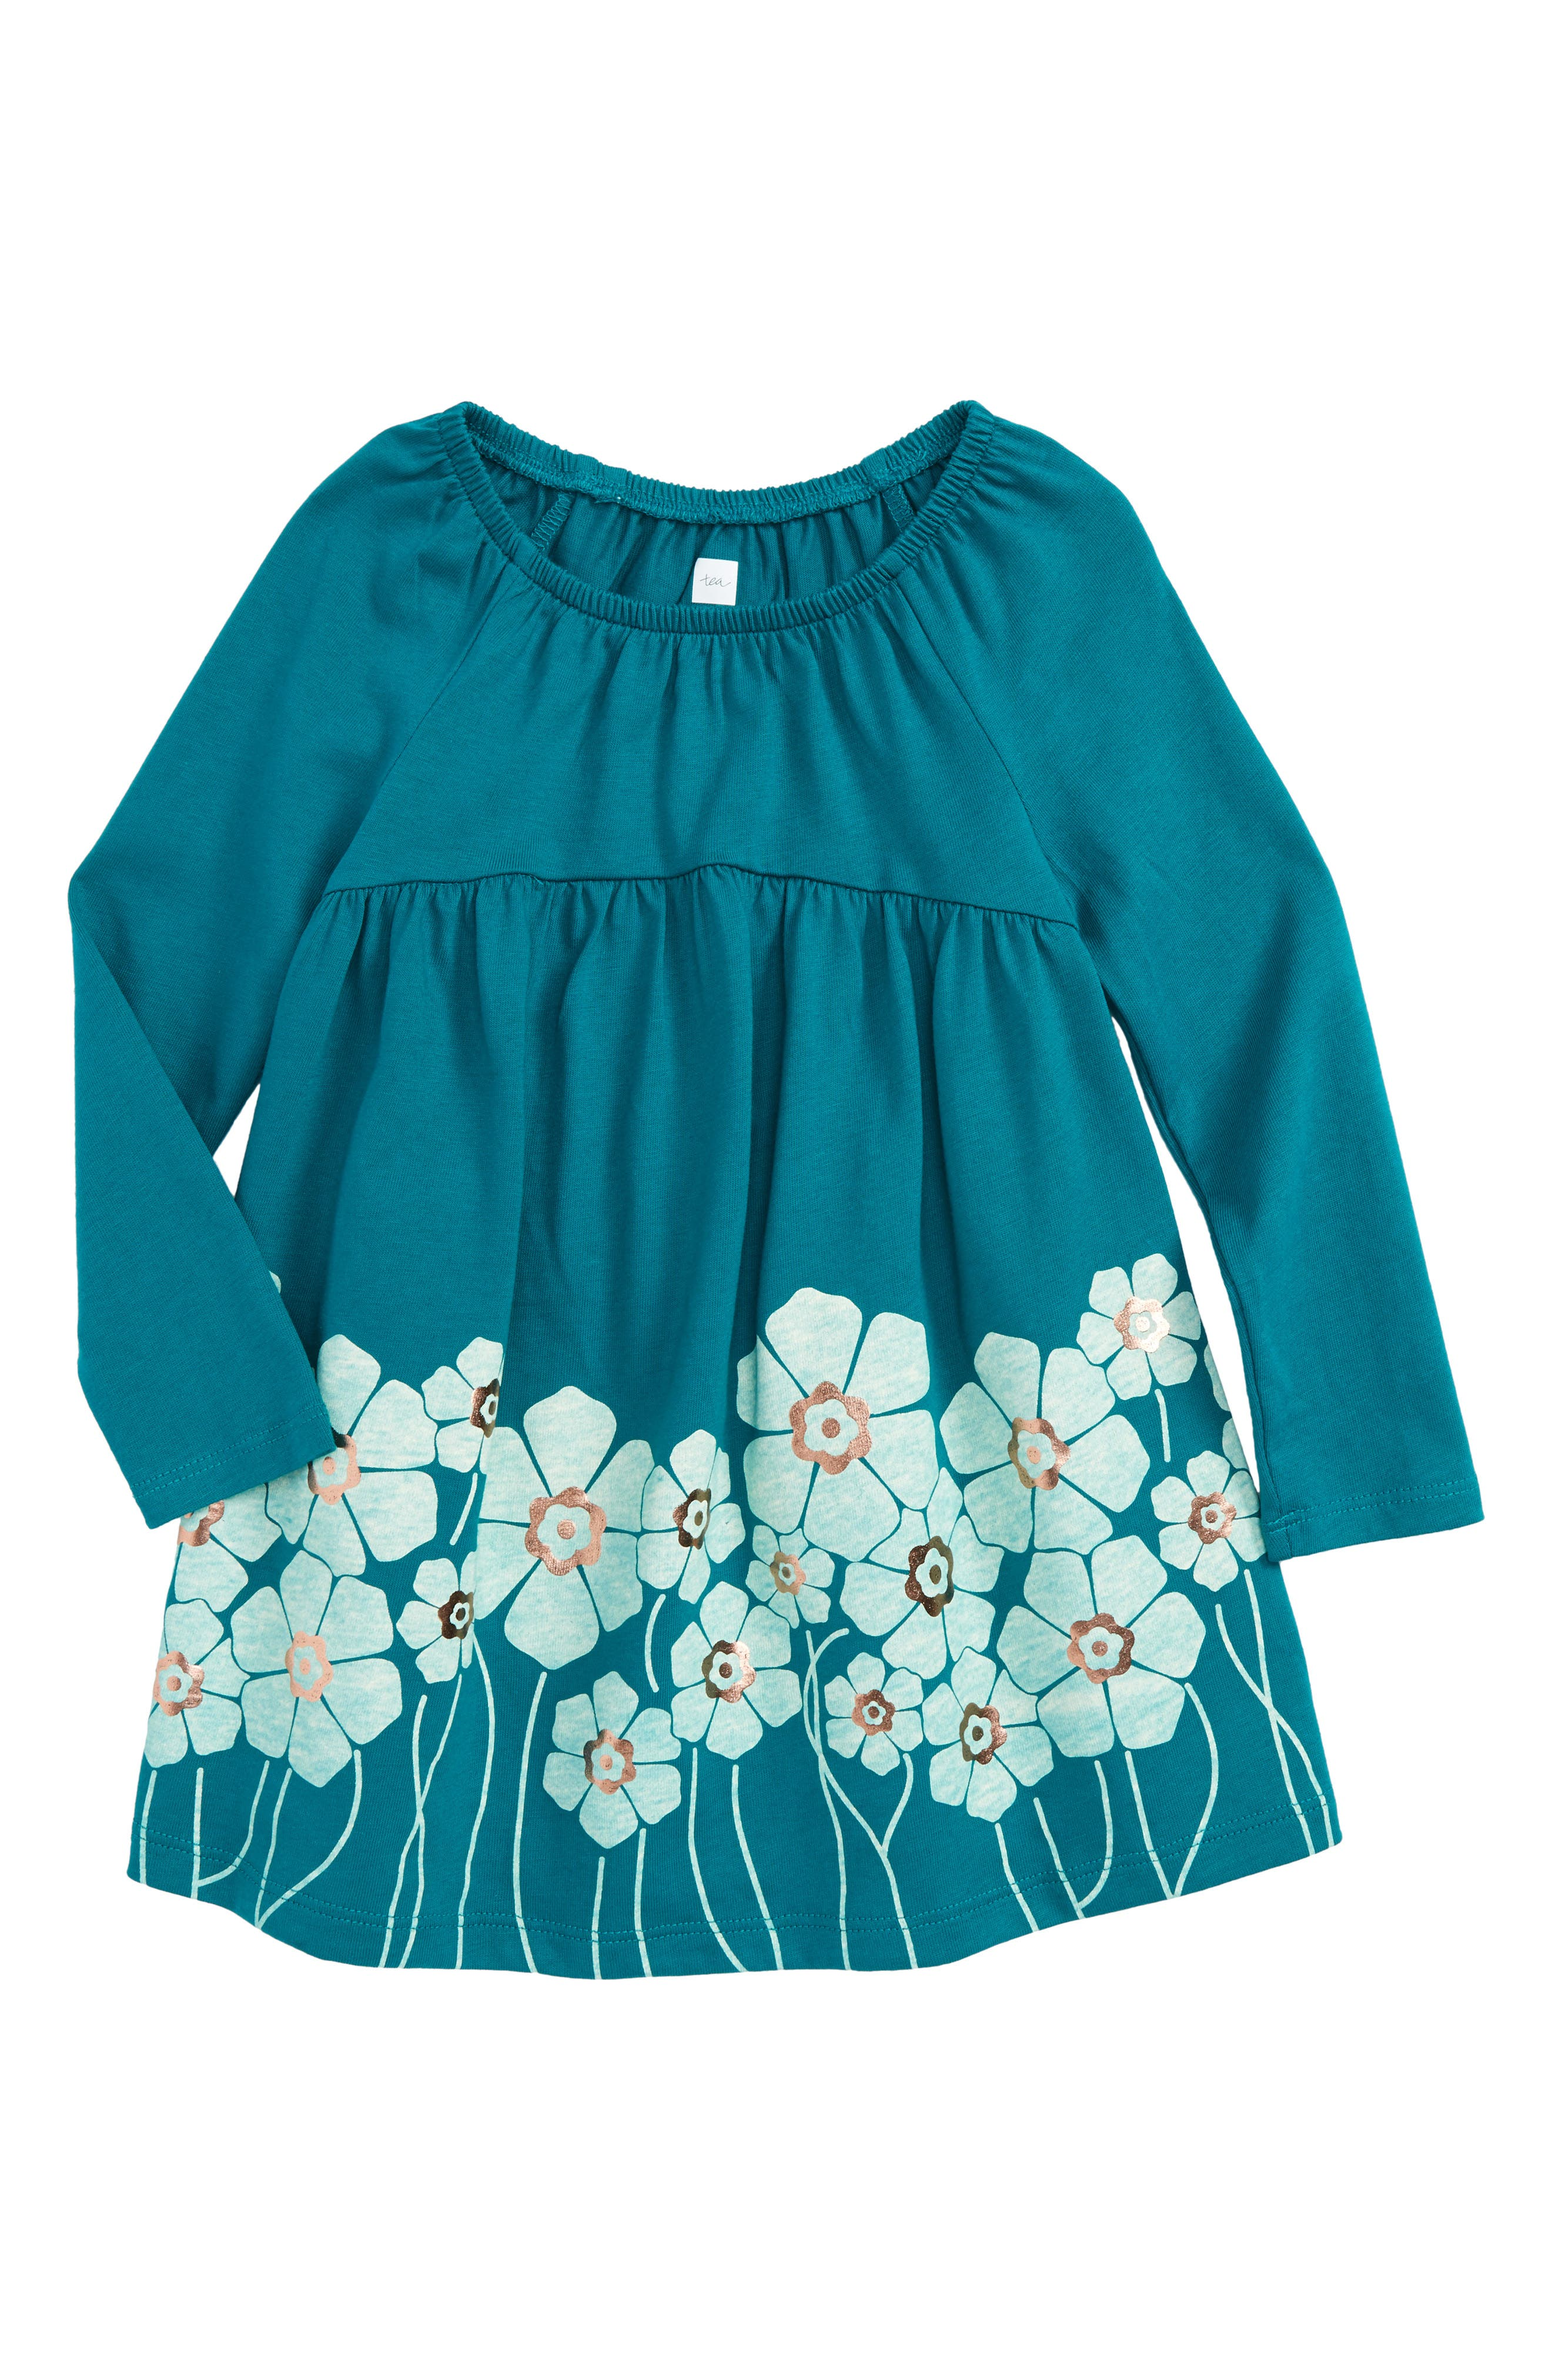 Main Image - Tea Collection Hatton Dress (Baby Girls)